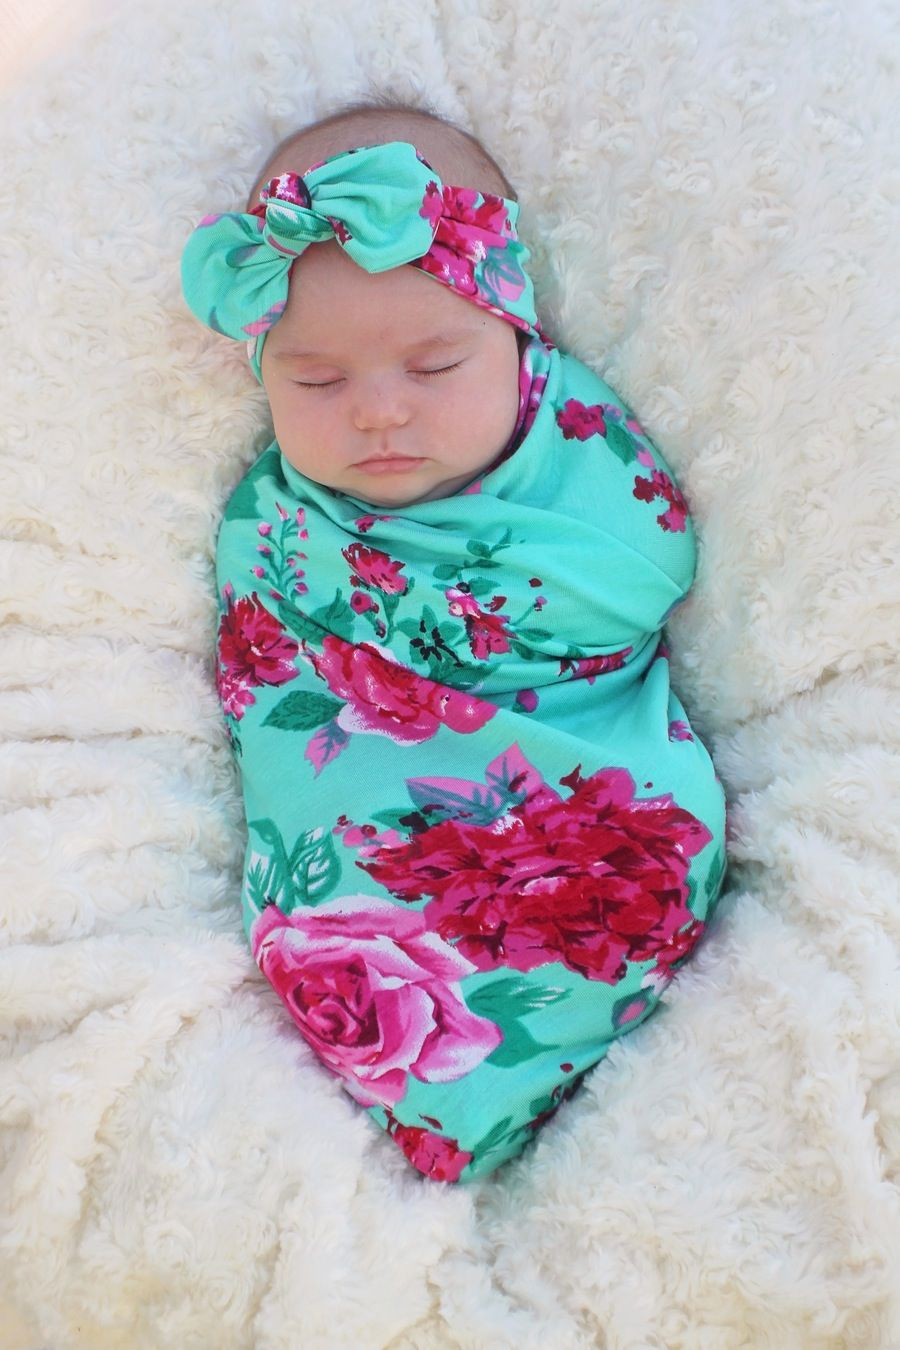 91a83b9b0e Image of Tiffany Swaddle Set. Image of Tiffany Swaddle Set Its A Baby ...